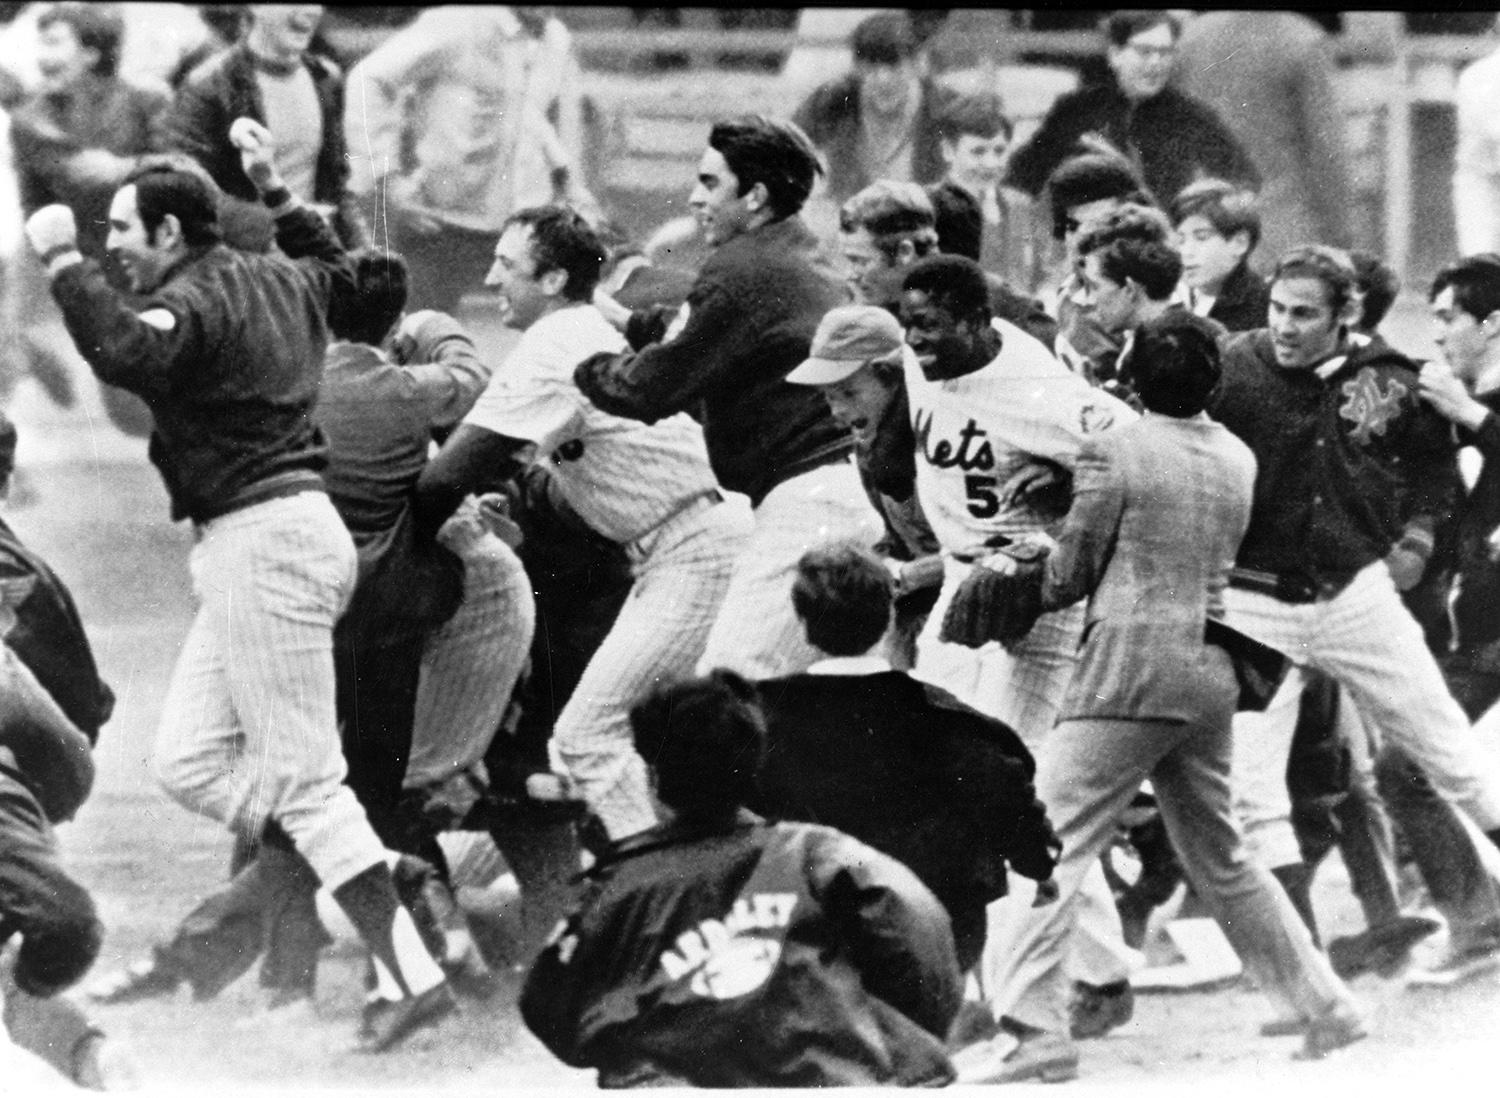 Tommie Agee was a part of the New York Mets team that won the World Series in 1969. (National Baseball Hall of Fame and Museum)